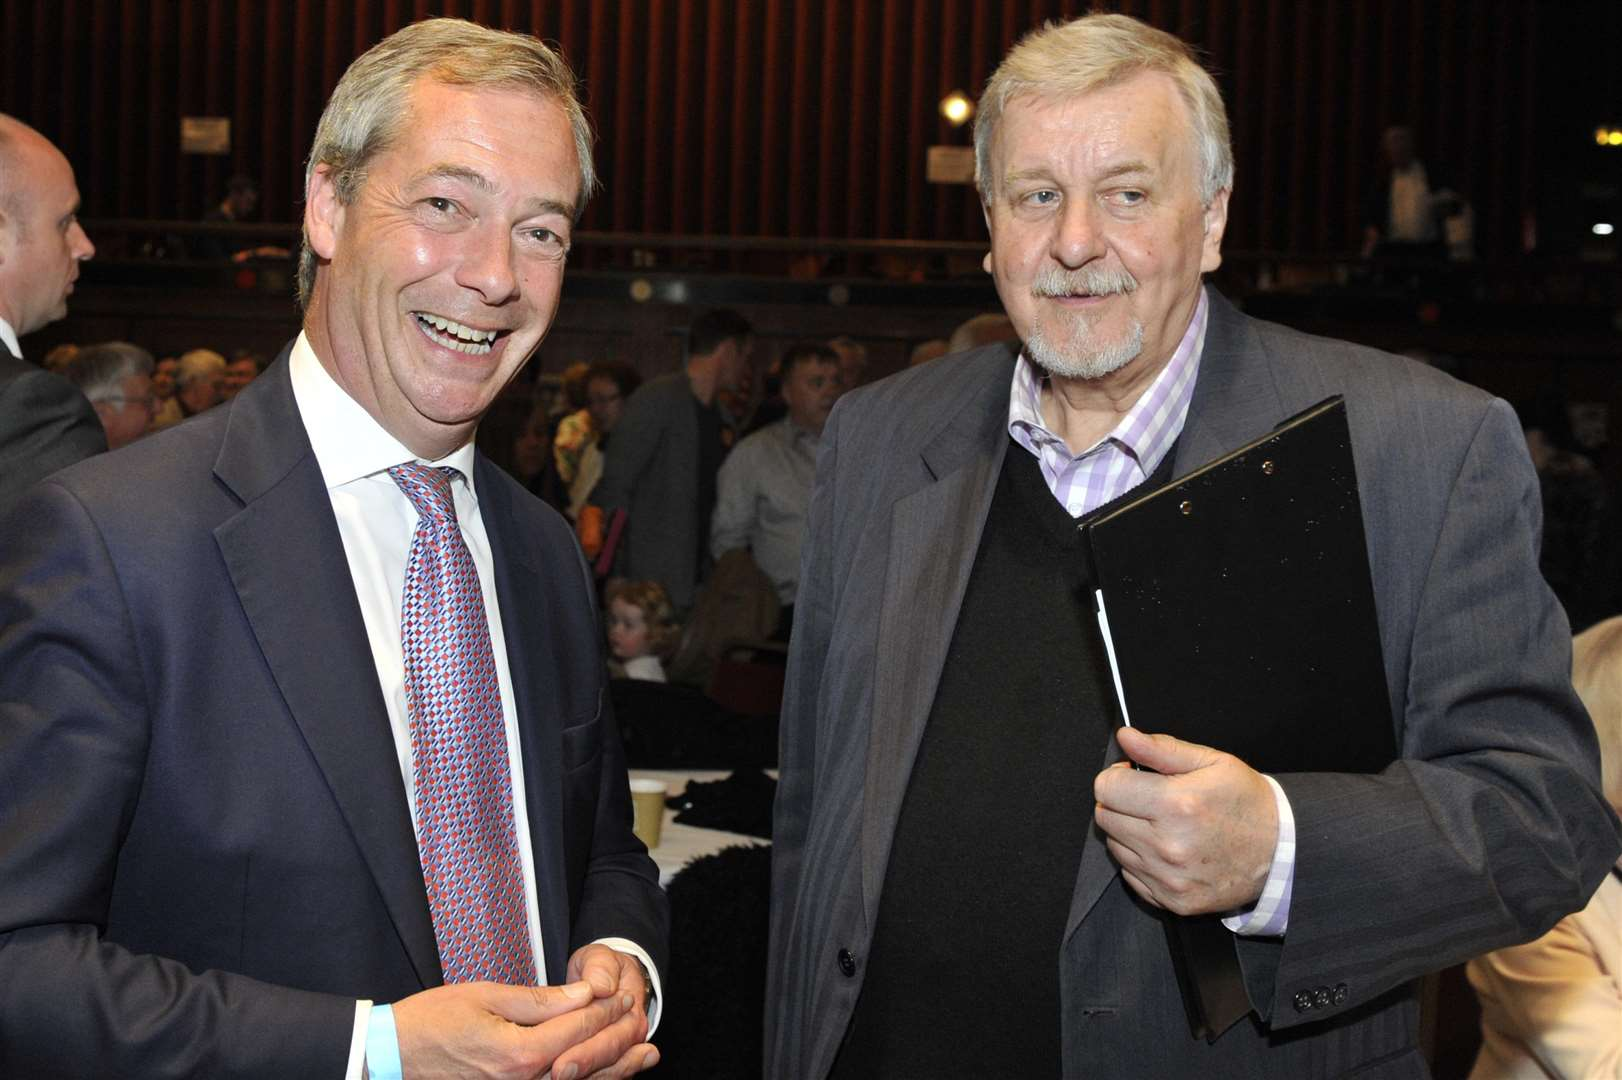 Martyn Heale helped run Nigel Farage's campaign to become MP for South Thanet